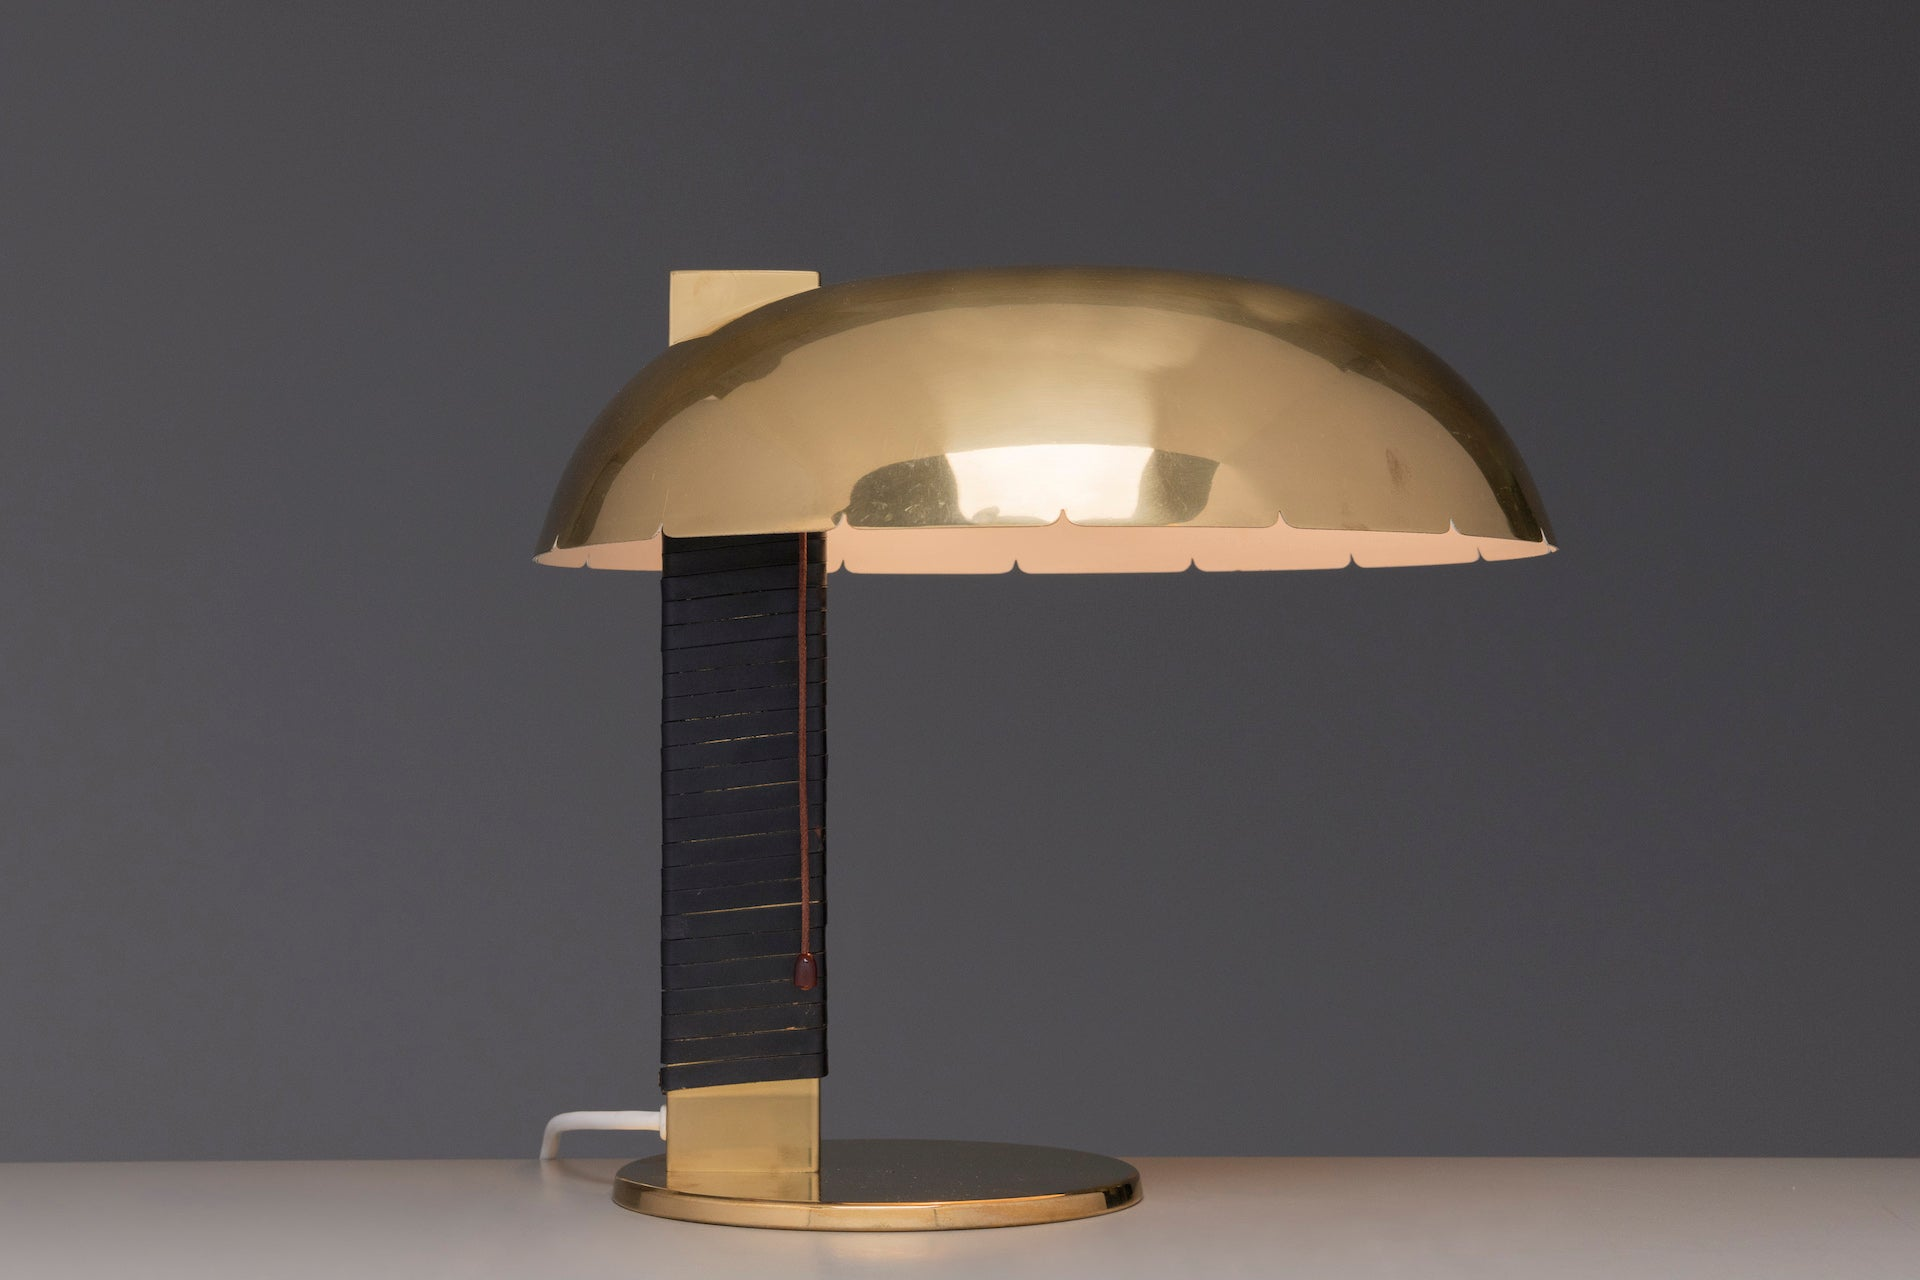 Model 9228 Table Lamp by Paavo Tynell, 1950s. Photo © Jacksons